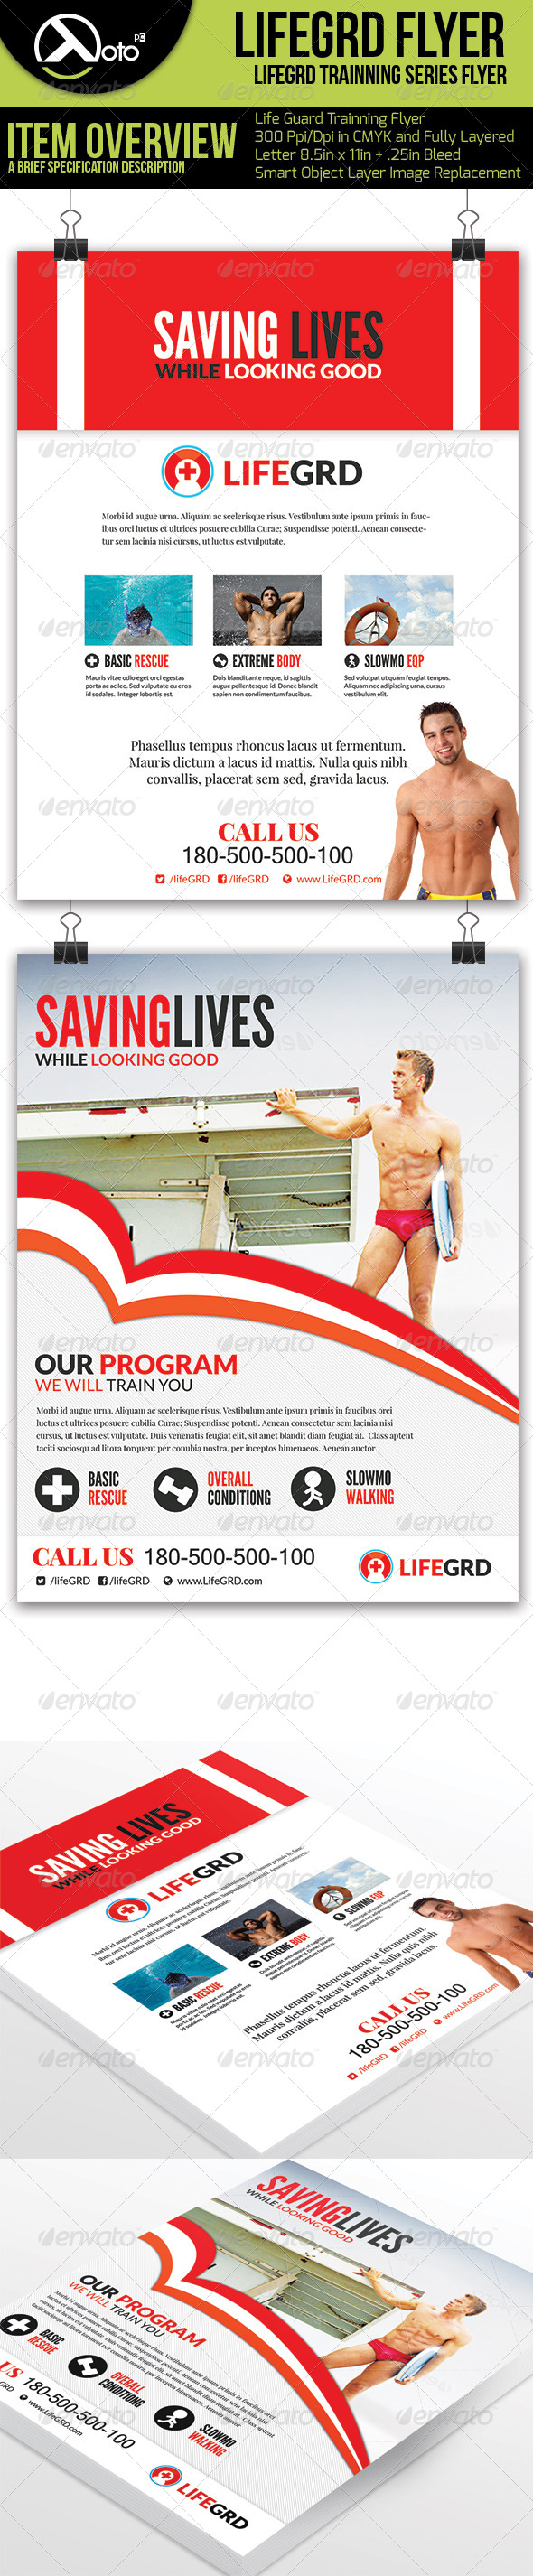 Life Guard Flyer Template - Corporate Flyers